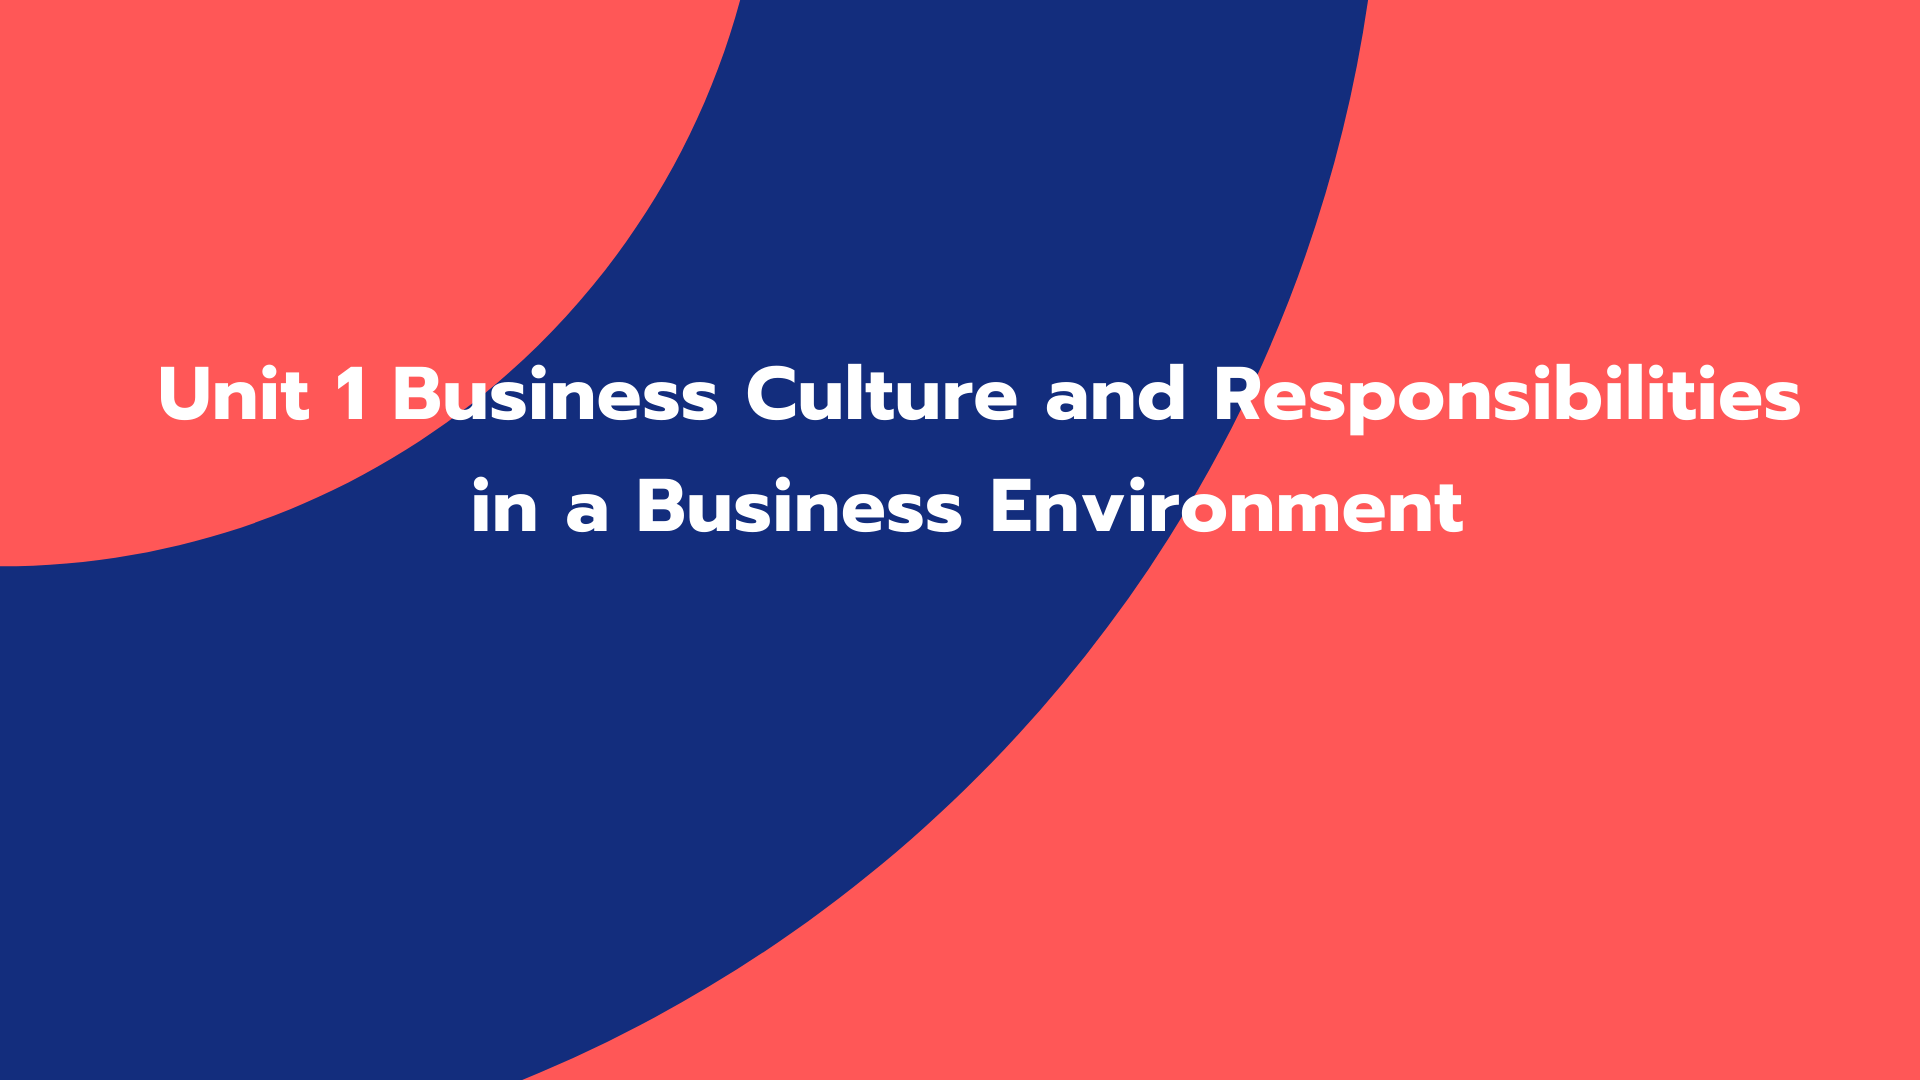 Unit 1 Business Culture and Responsibilities in a Business Environment